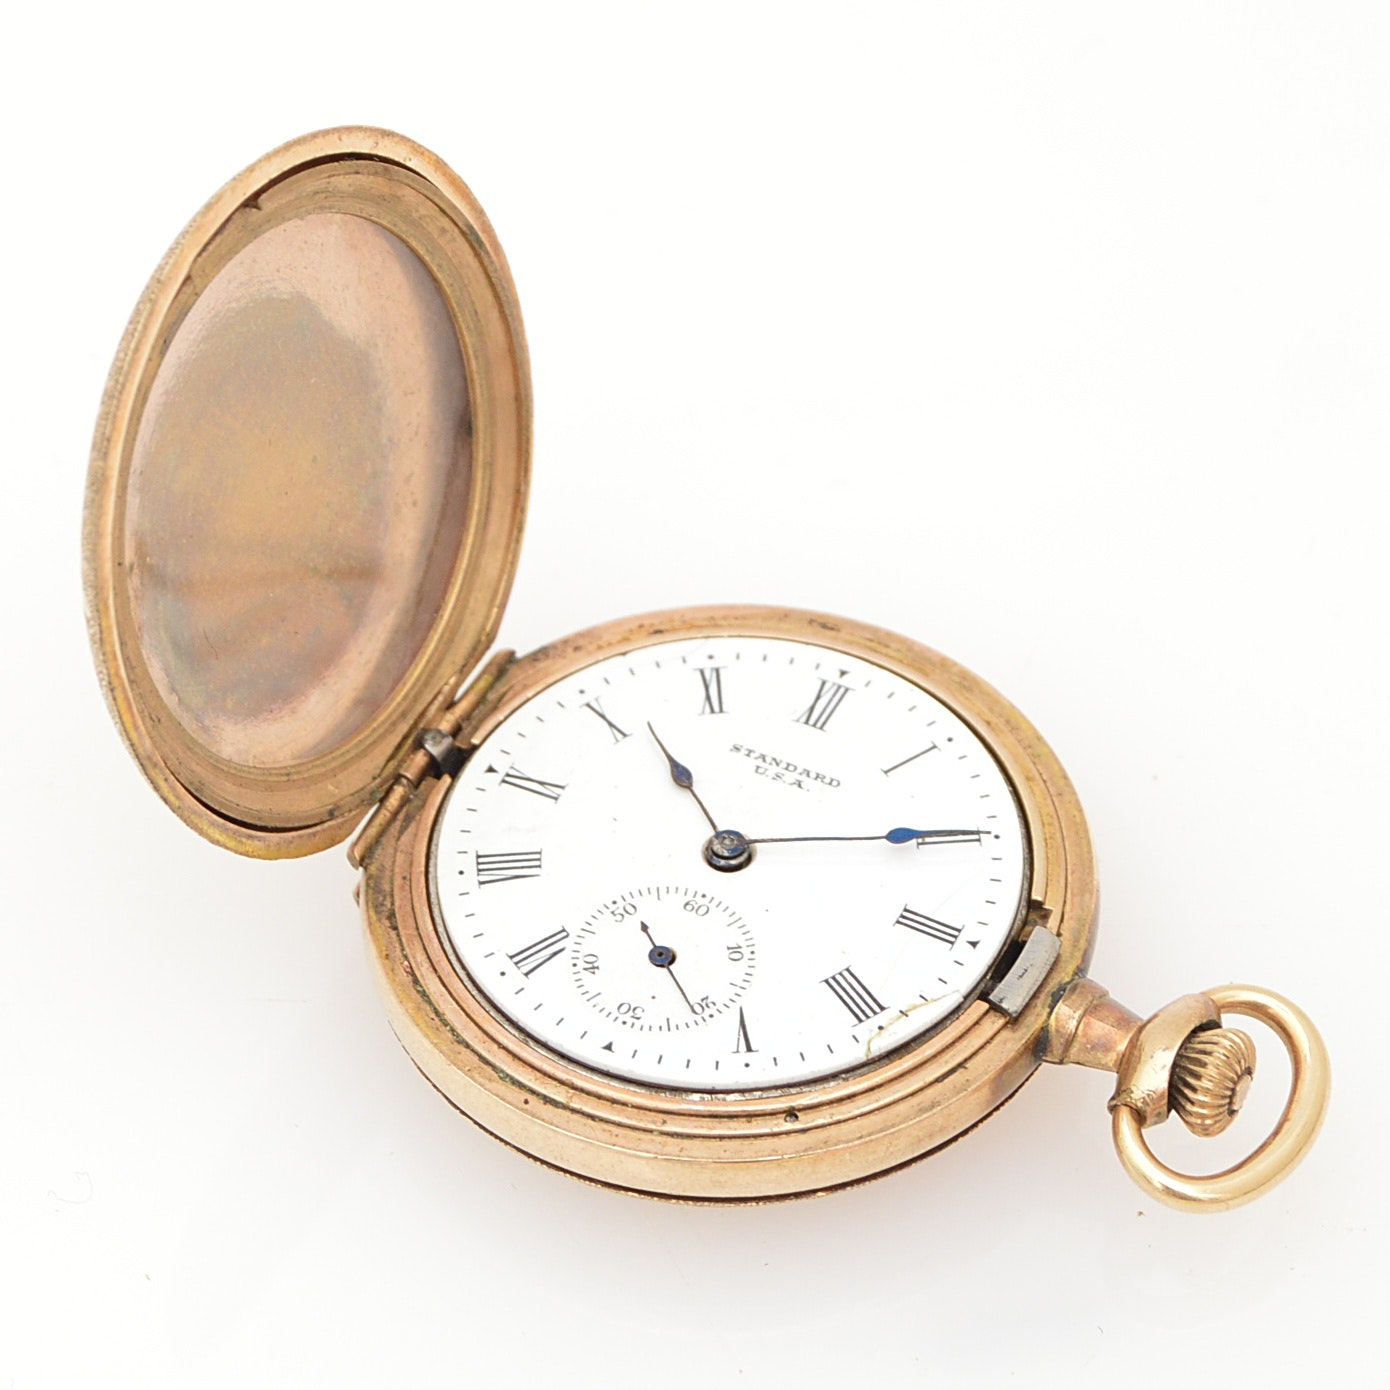 Antique Standard Gold-Filled Hunting Case Pocket Watch